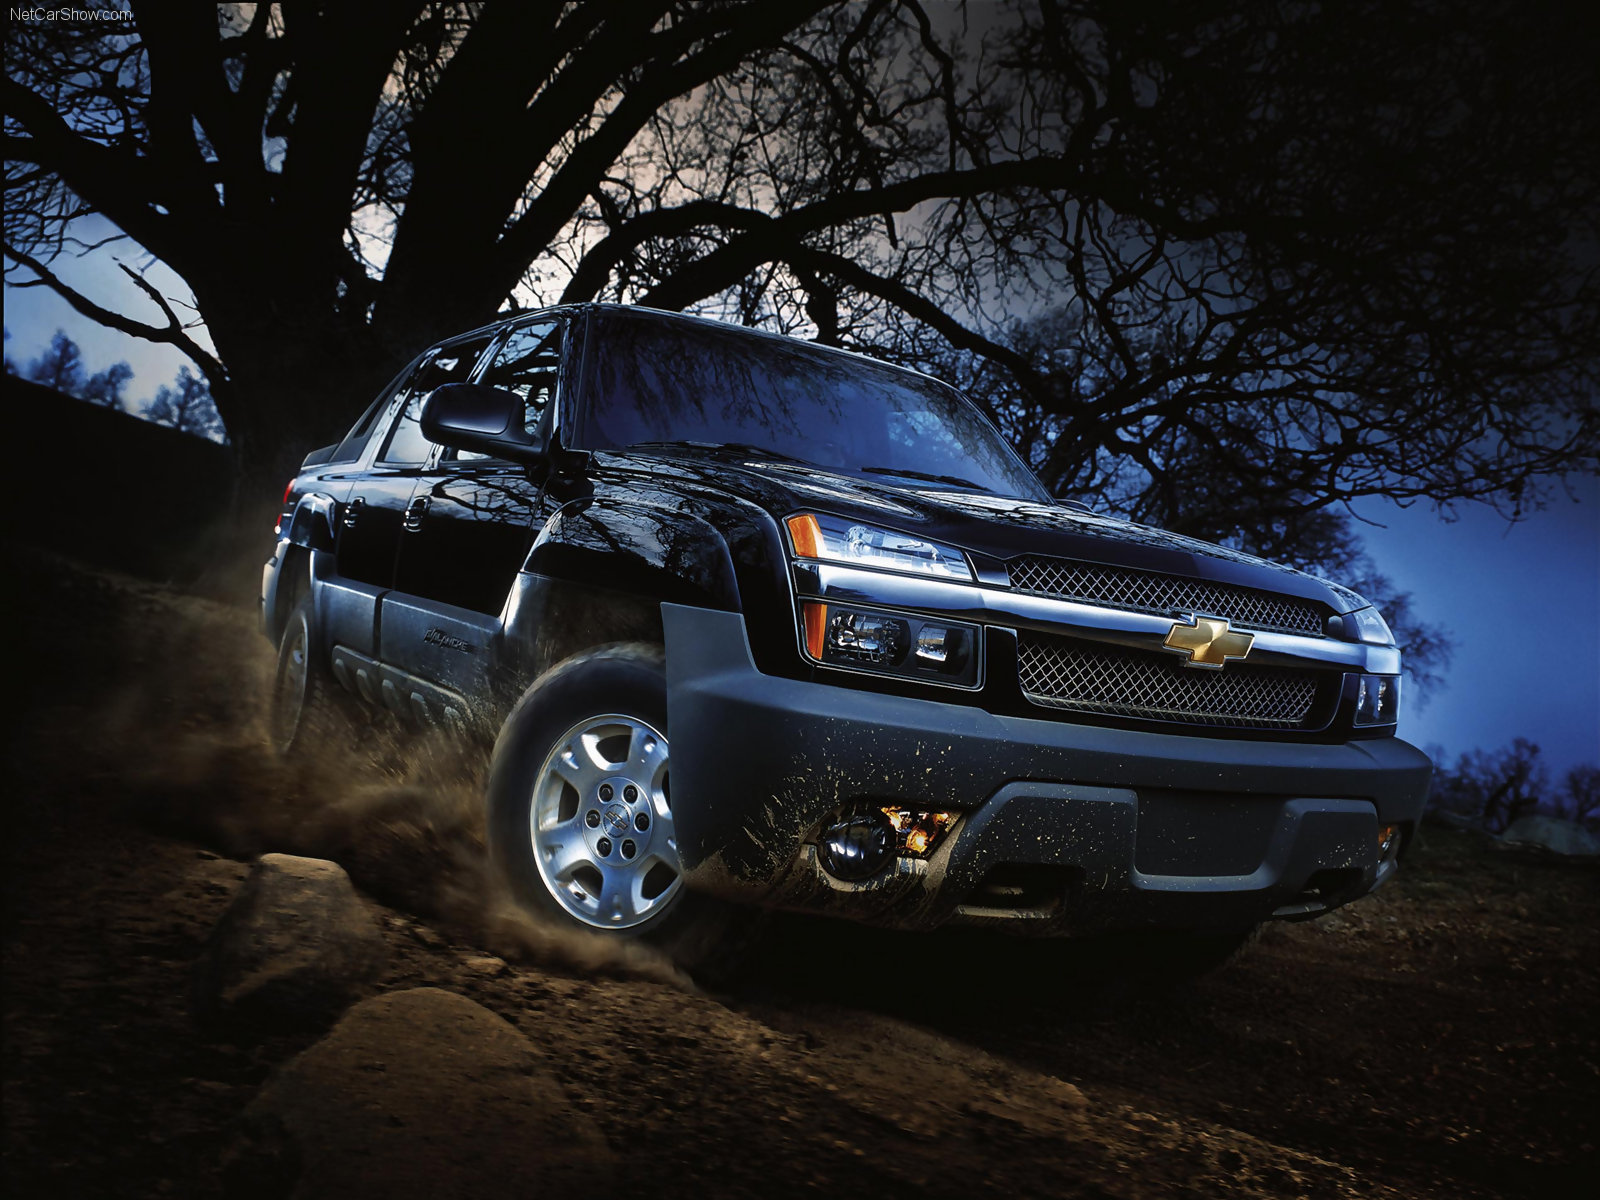 Chevrolet images Chevrolet Avalanche (2002) HD wallpaper and background photos